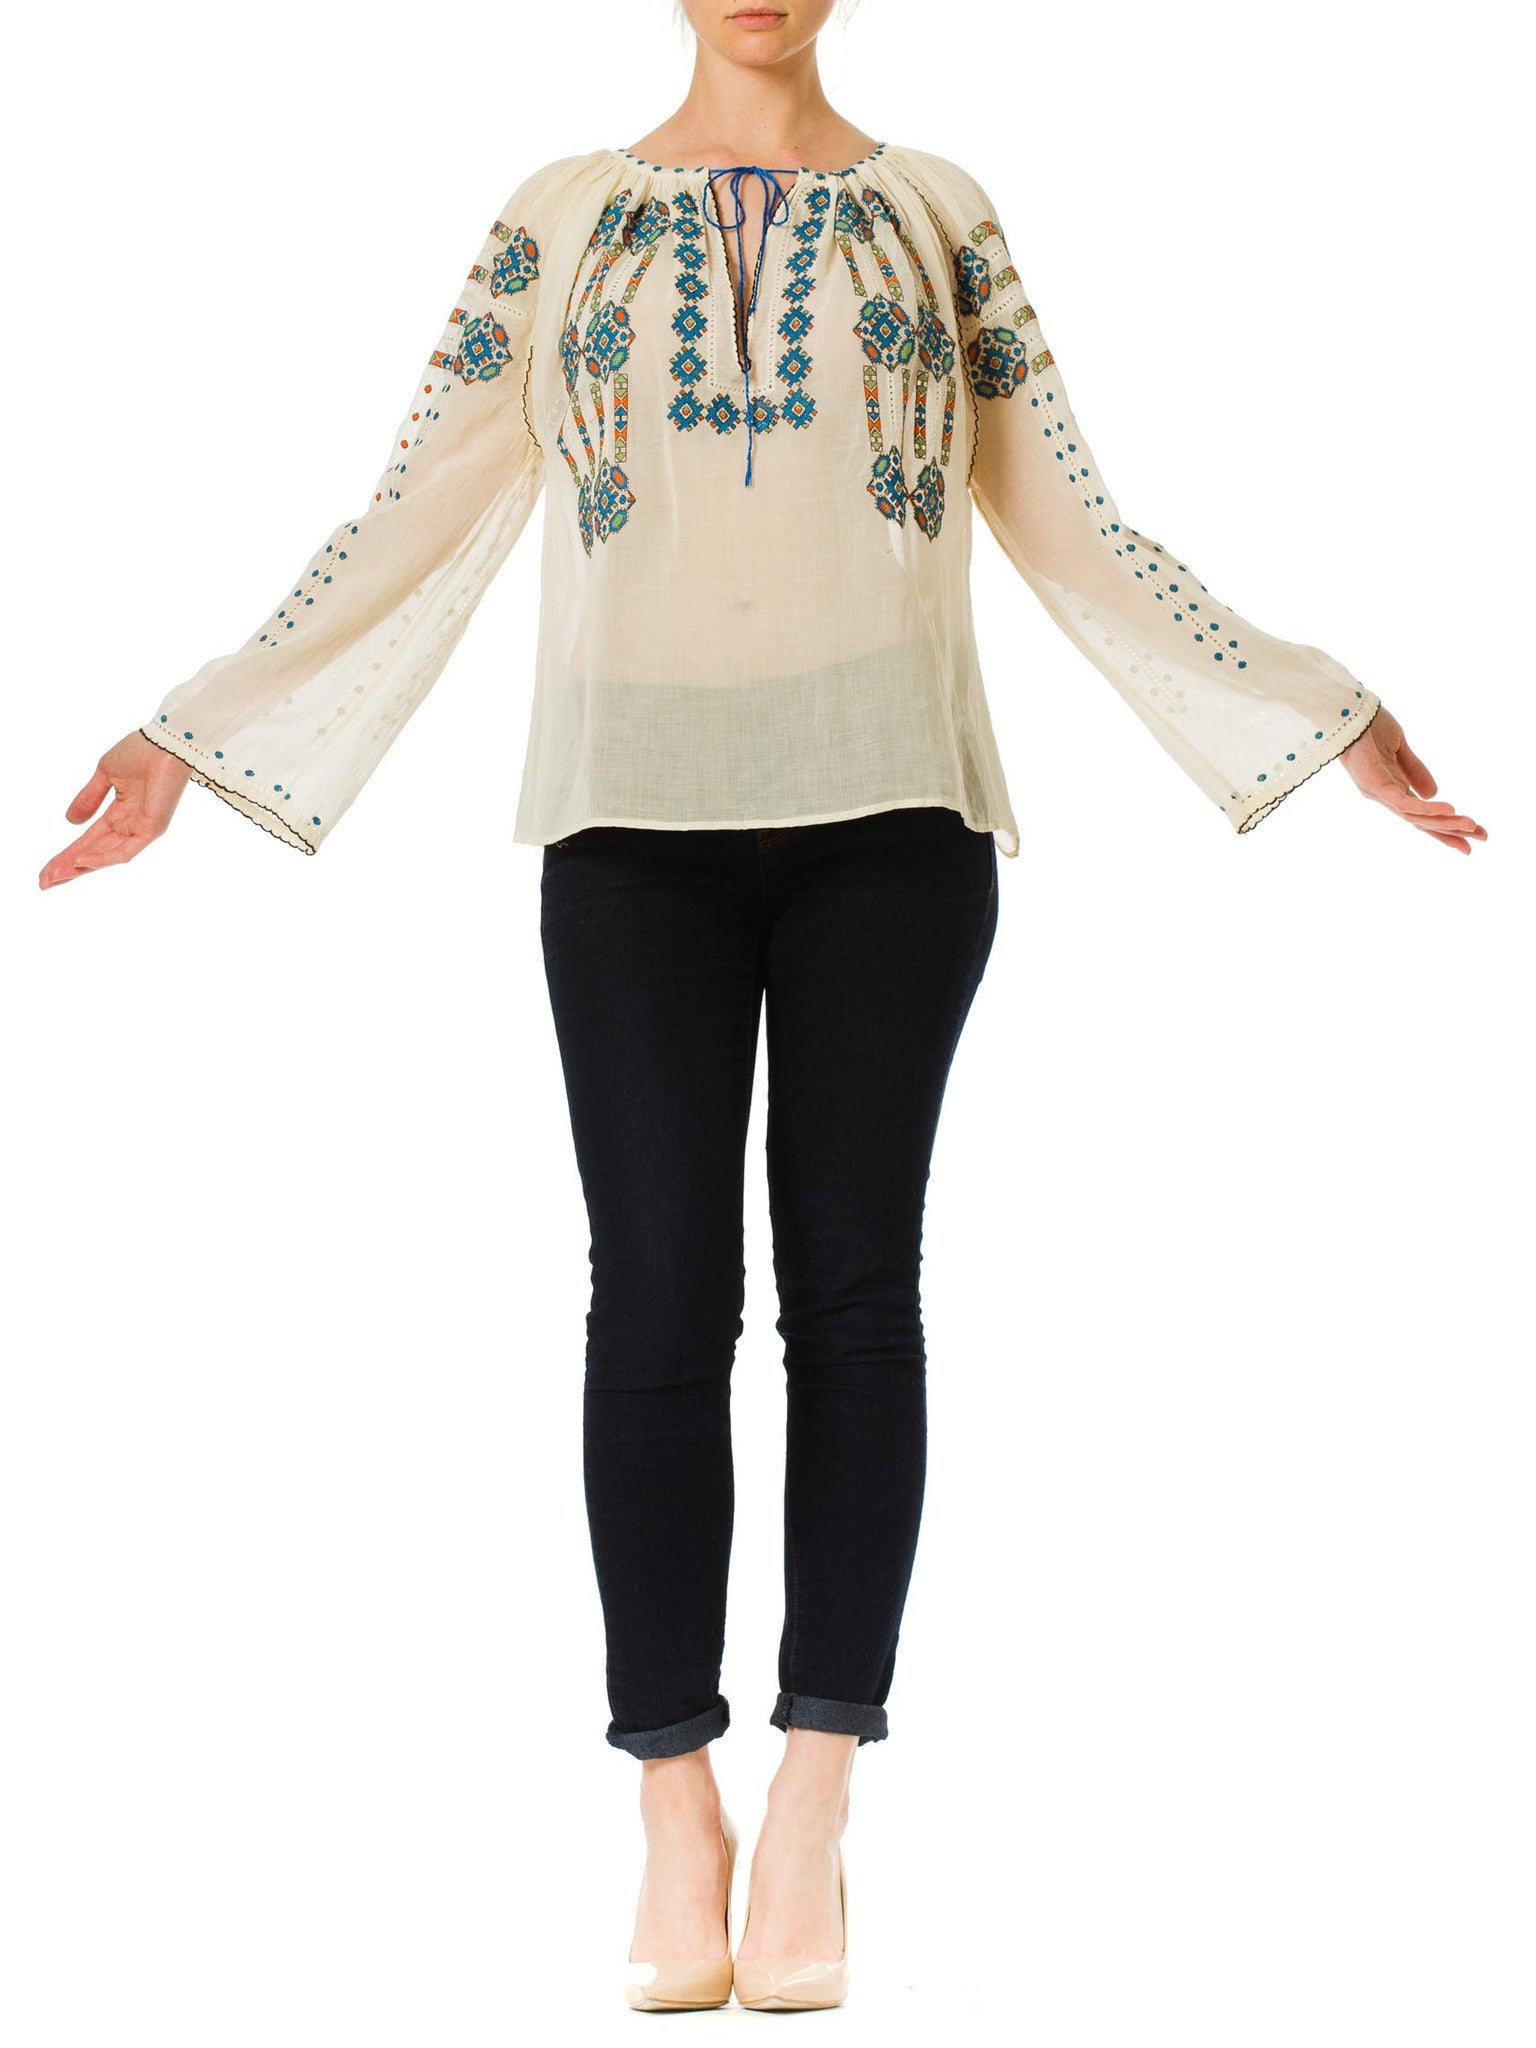 1970s Boho Peasant Style Cross Stitch Hand Embroidered Blouse